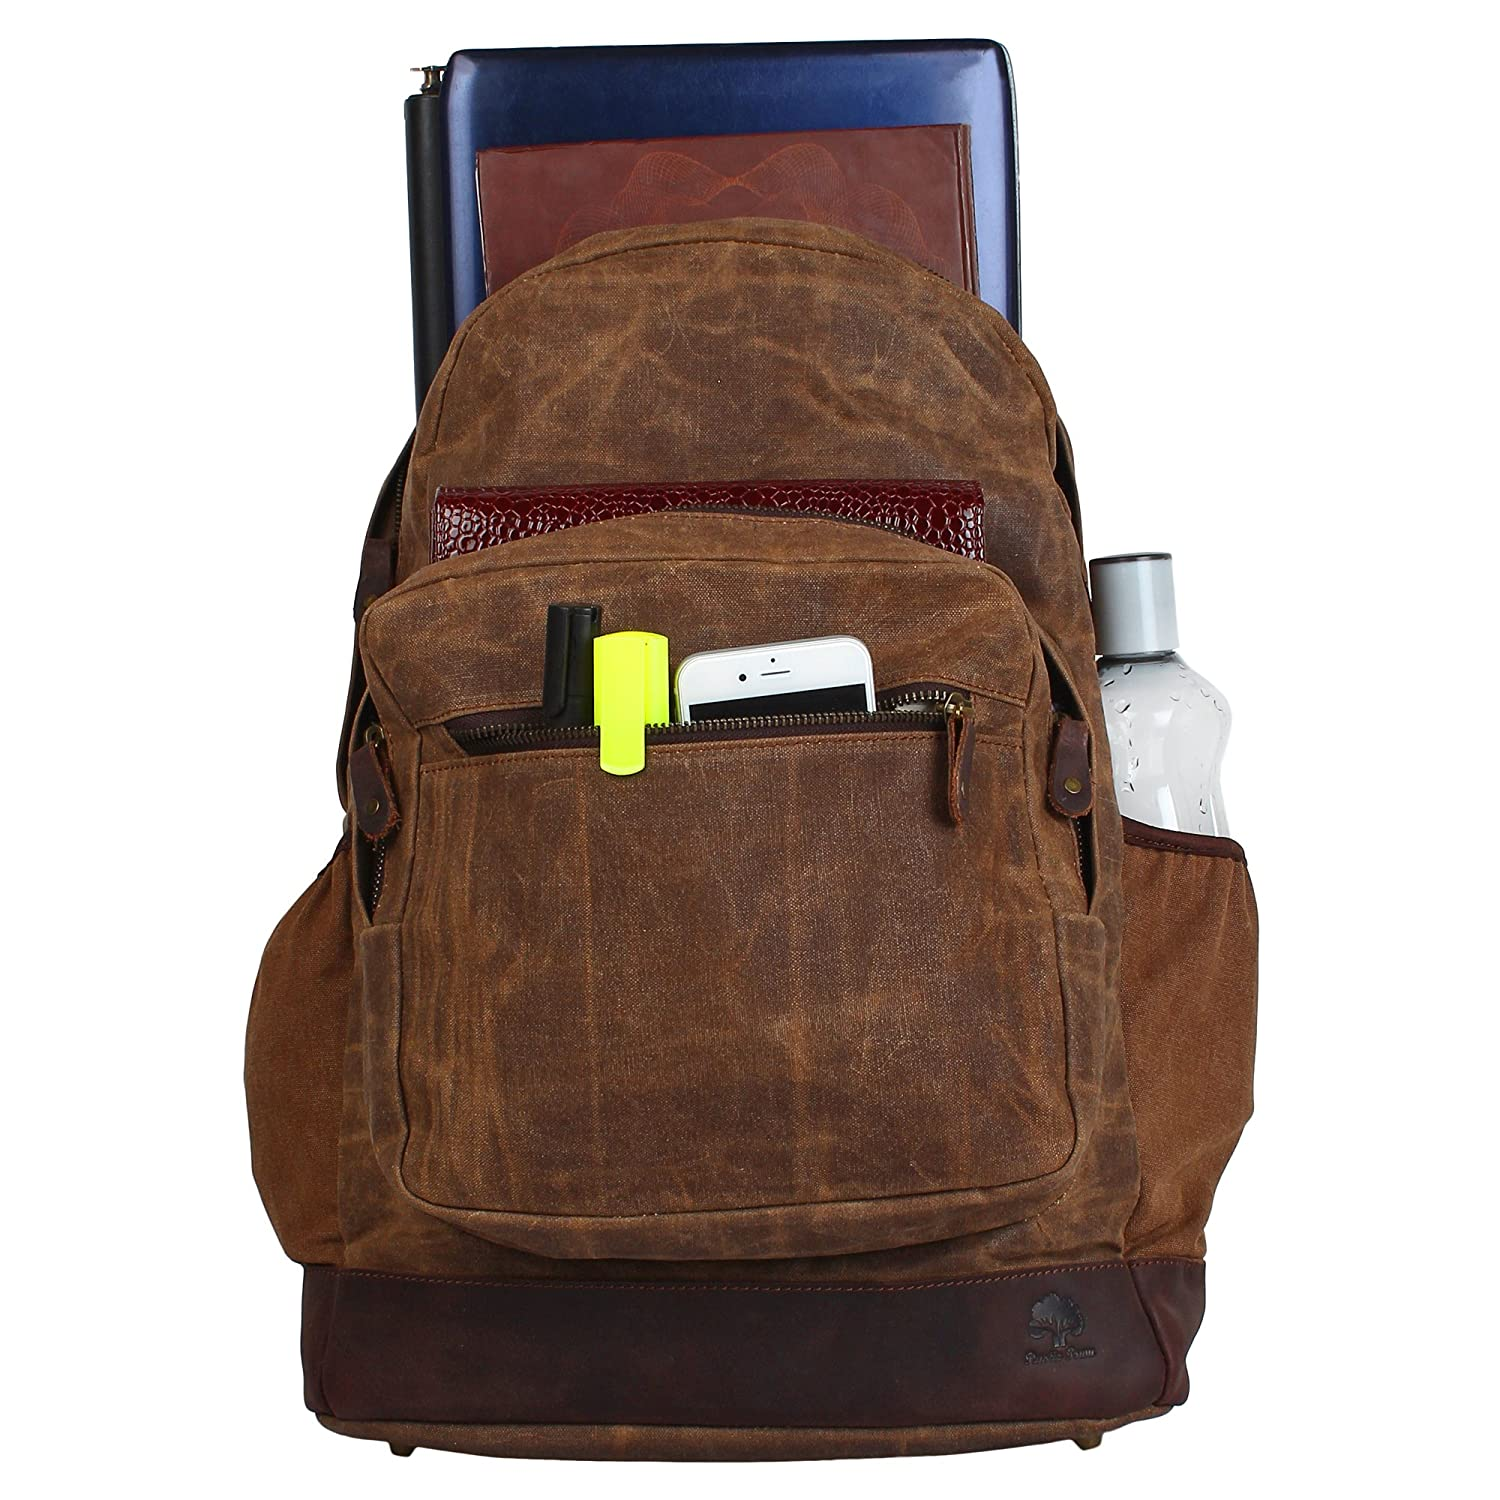 8e0c914af360 Amazon.com  Rustic Town Waxed Canvas Leather Backpack Laptop Bags Rucksack  for Students Unisex  RusticTown